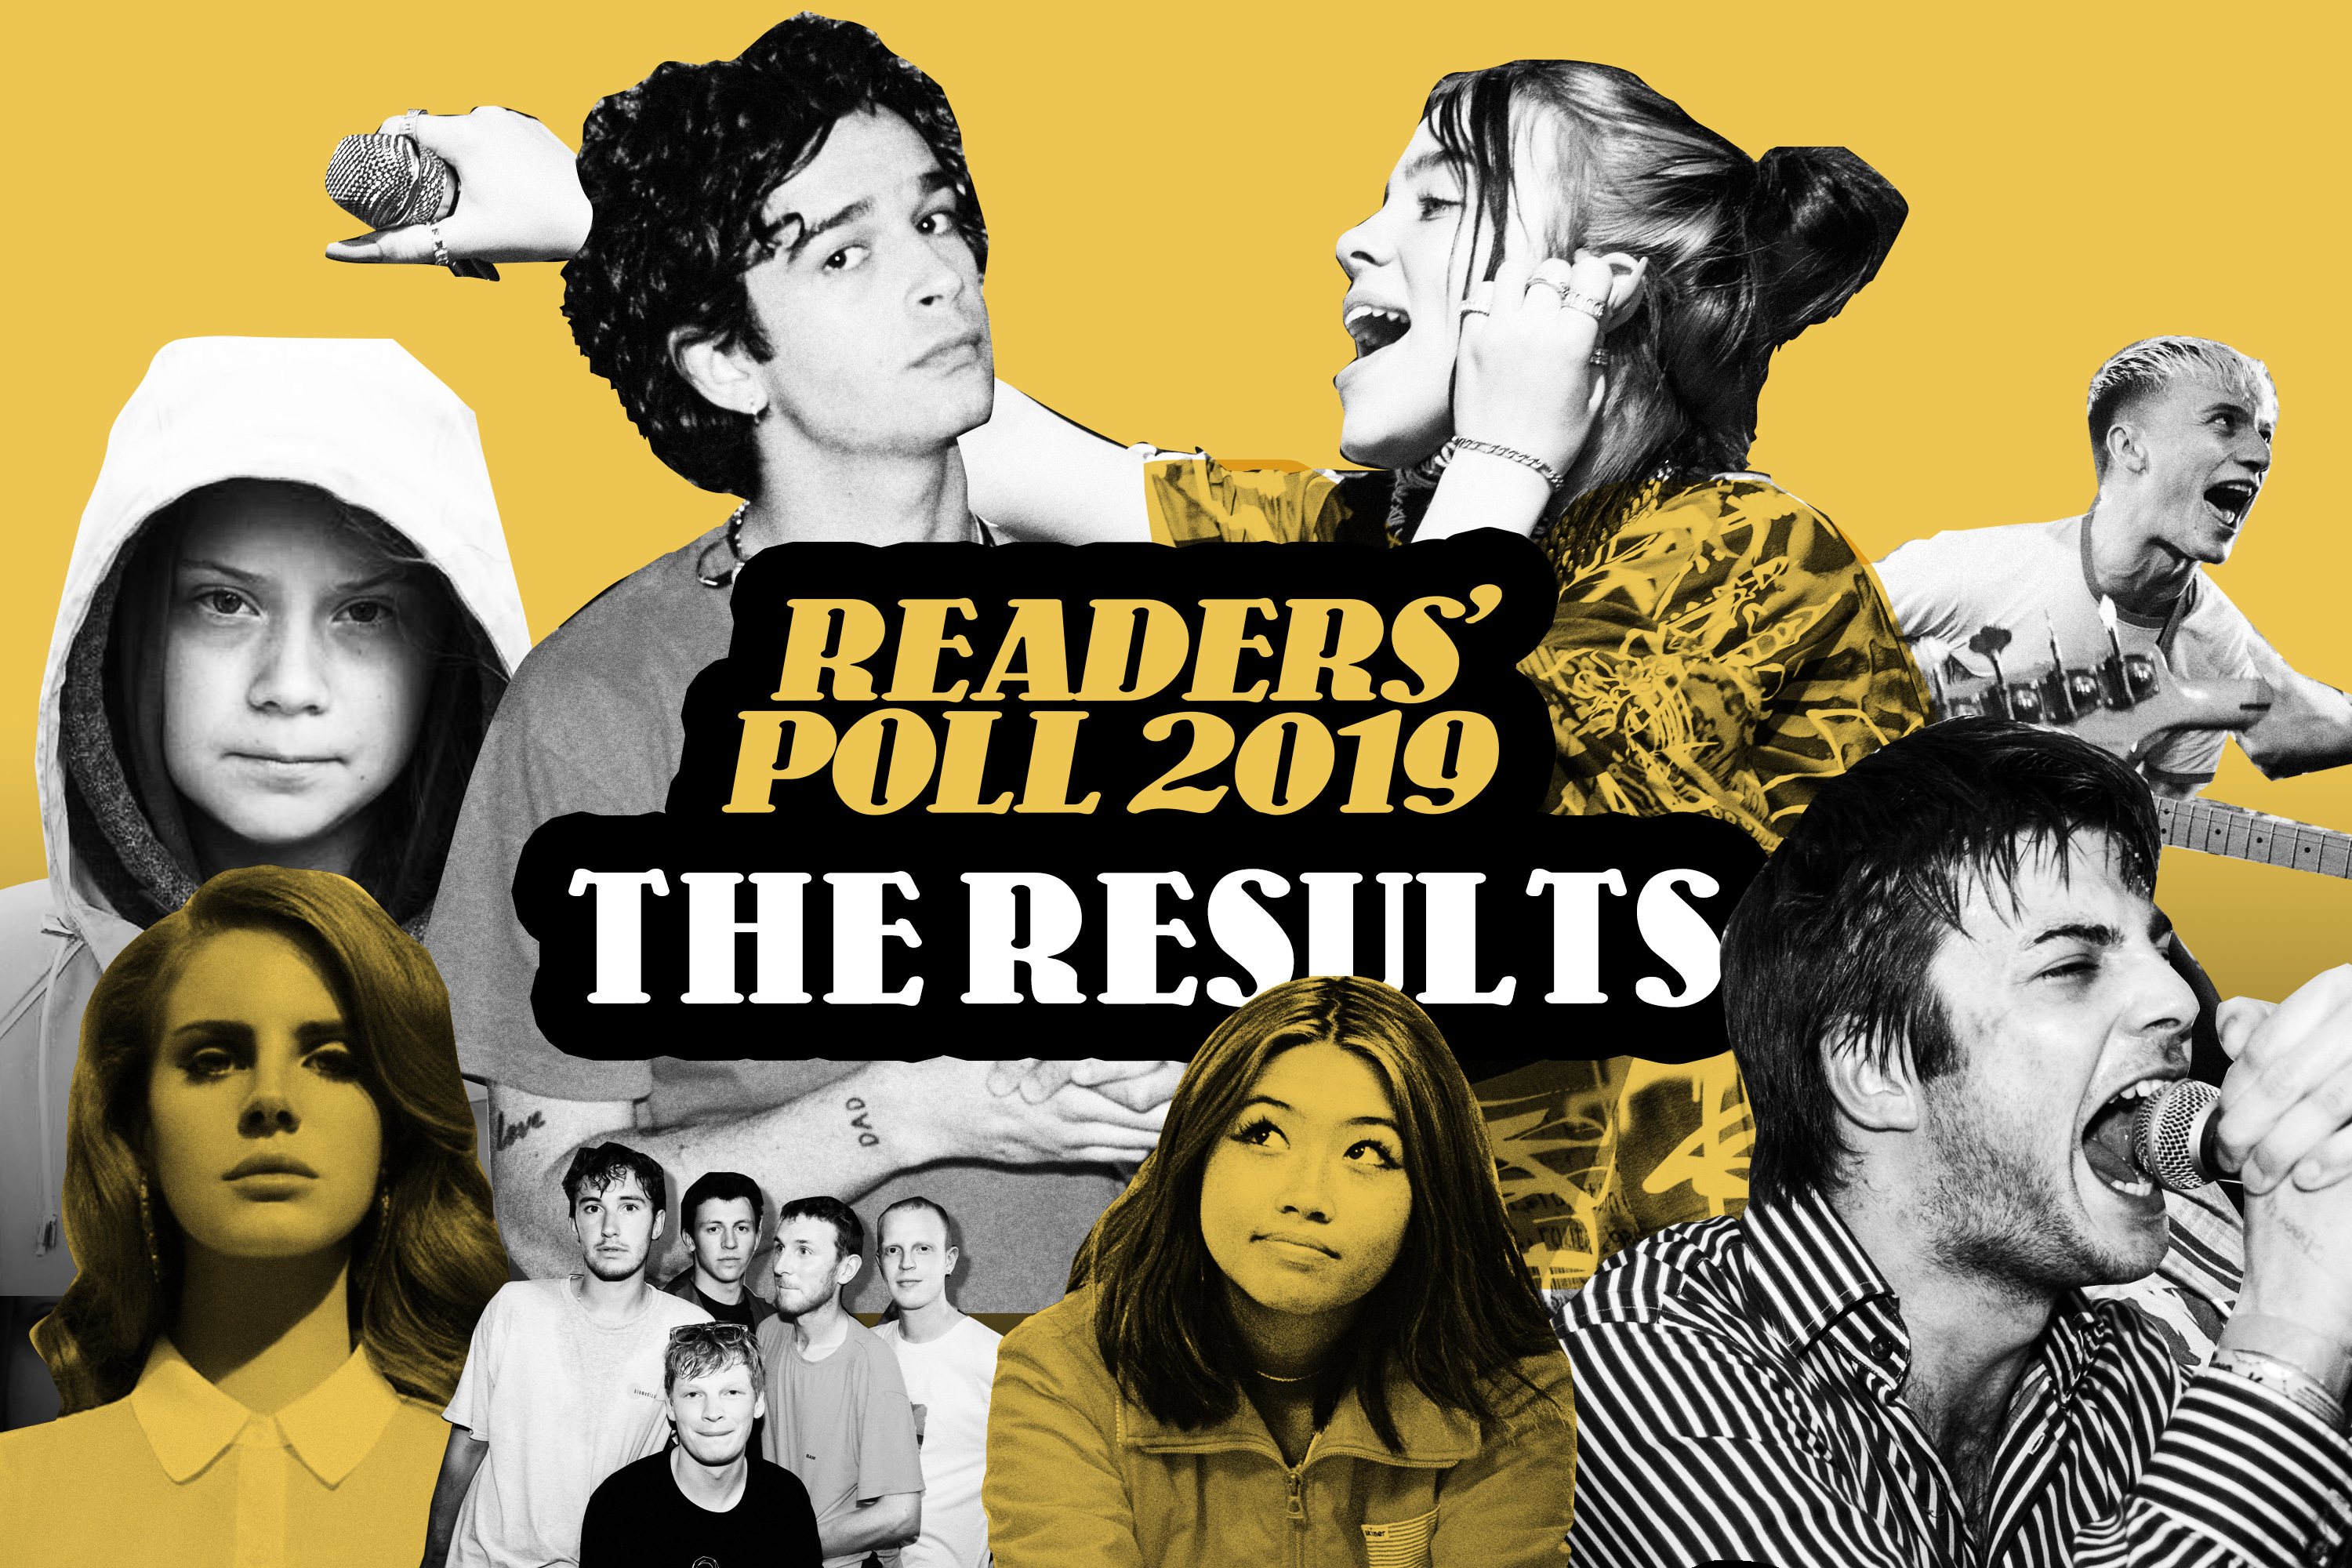 Readers' Poll 2019: The Results